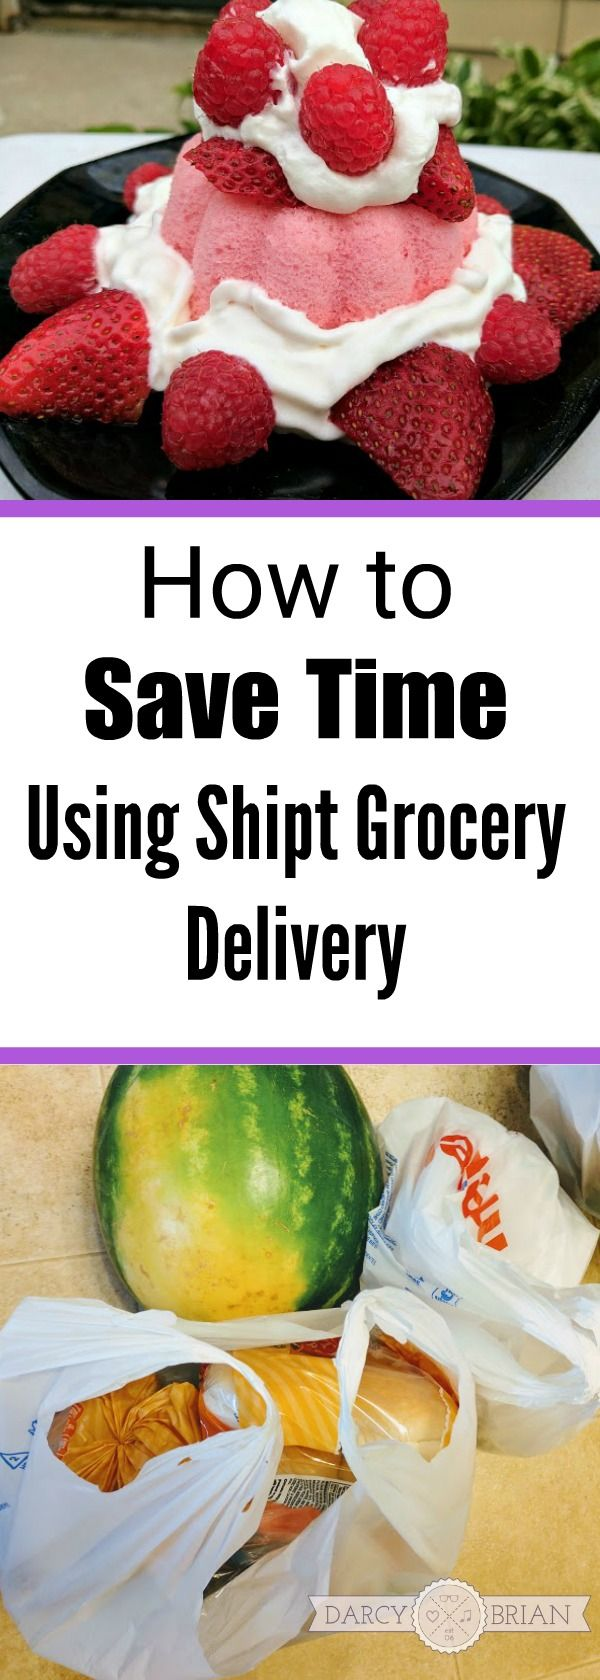 Sponsored: Looking for an easy to use grocery delivery service? Check out our thoughts on using the Shipt app for ordering groceries from Meijer in the Milwaukee area.